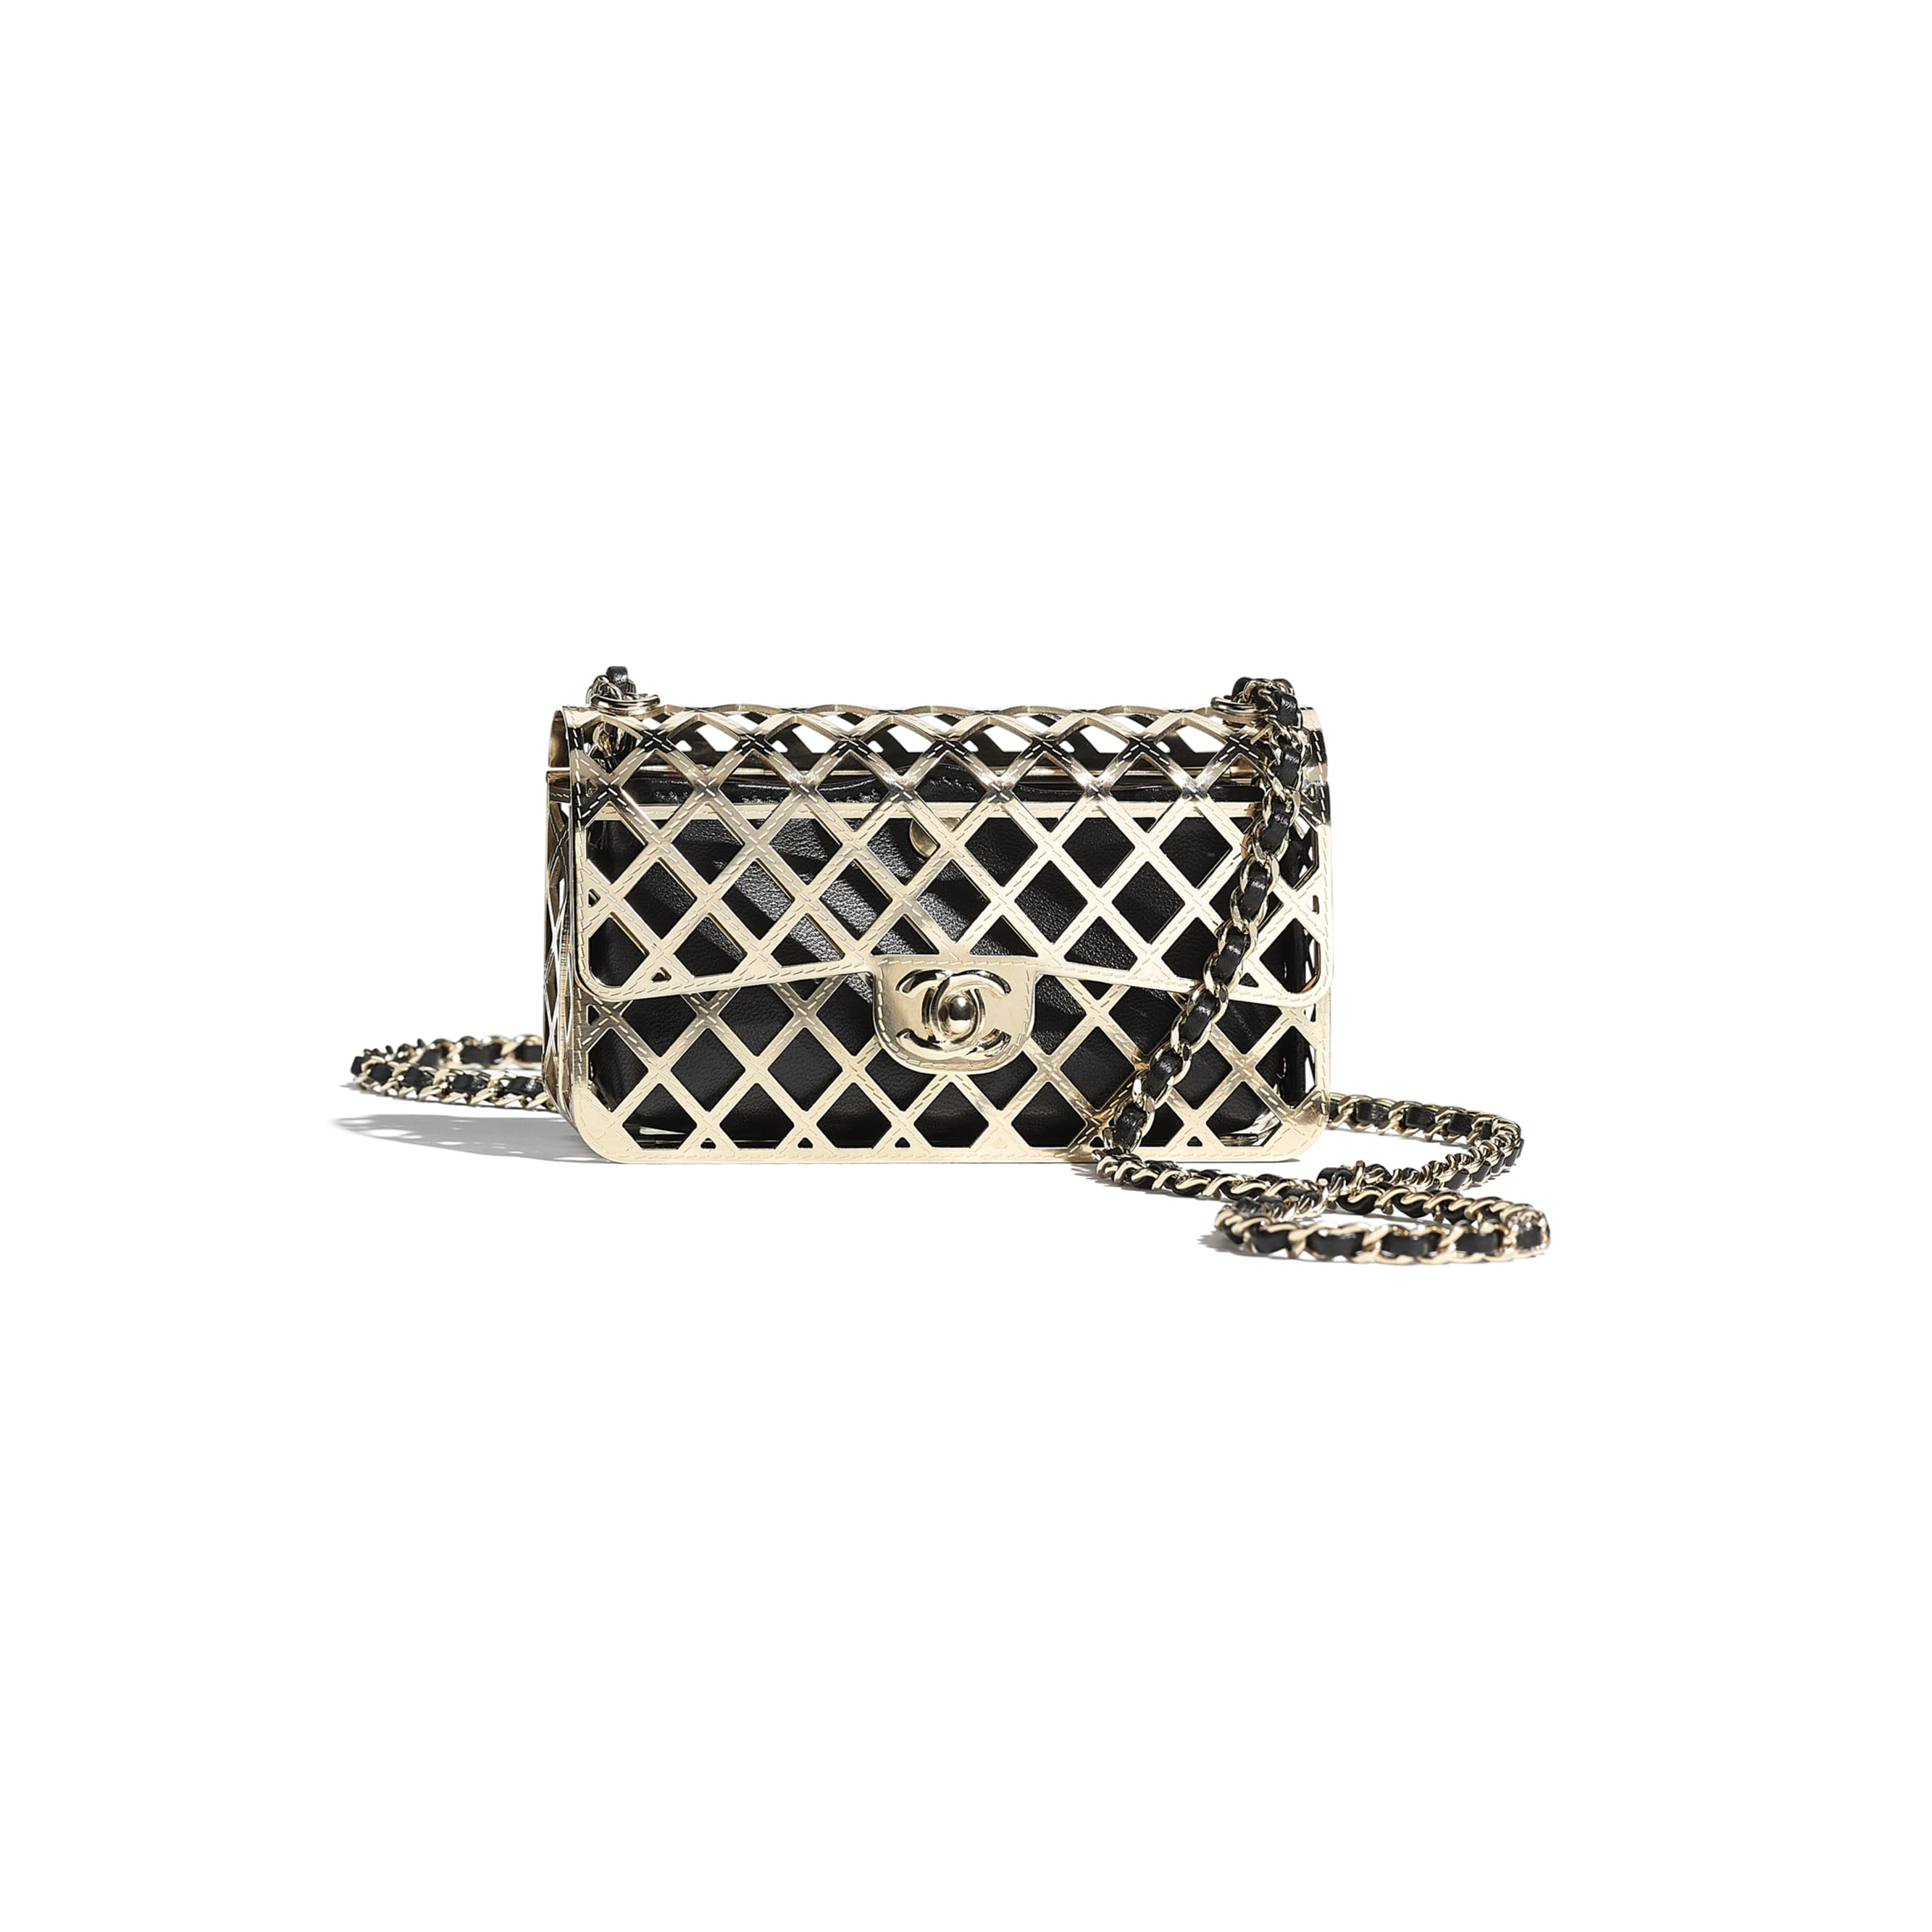 Mini Evening Bag - Gold & Black - Gold-Tone Metal & Lambskin - CHANEL - Default view - see standard sized version